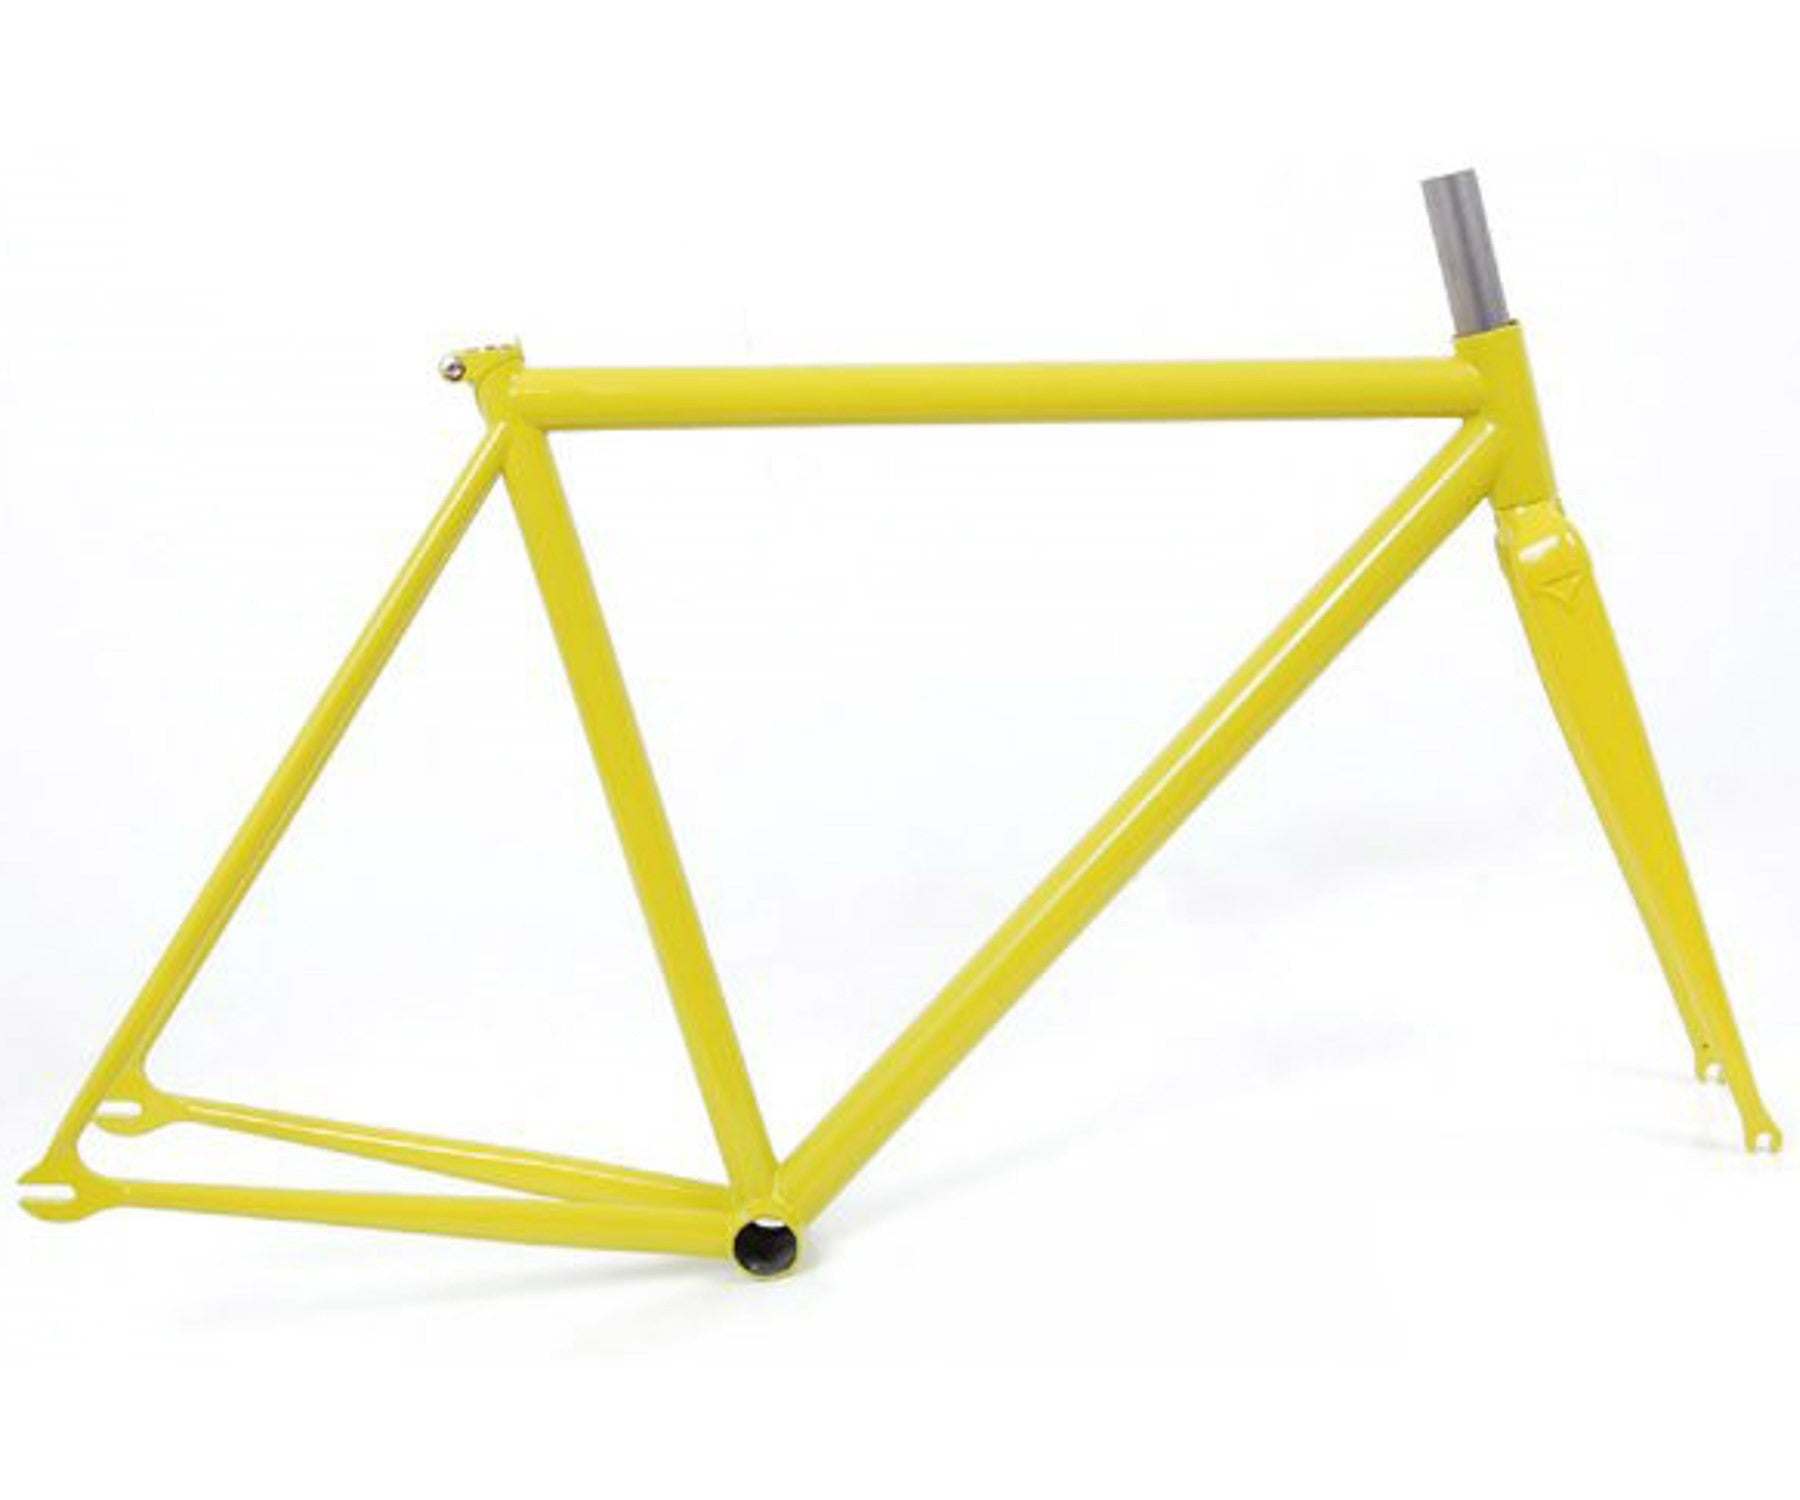 EAI Bare Knuckle frameset - various colors - Retrogression